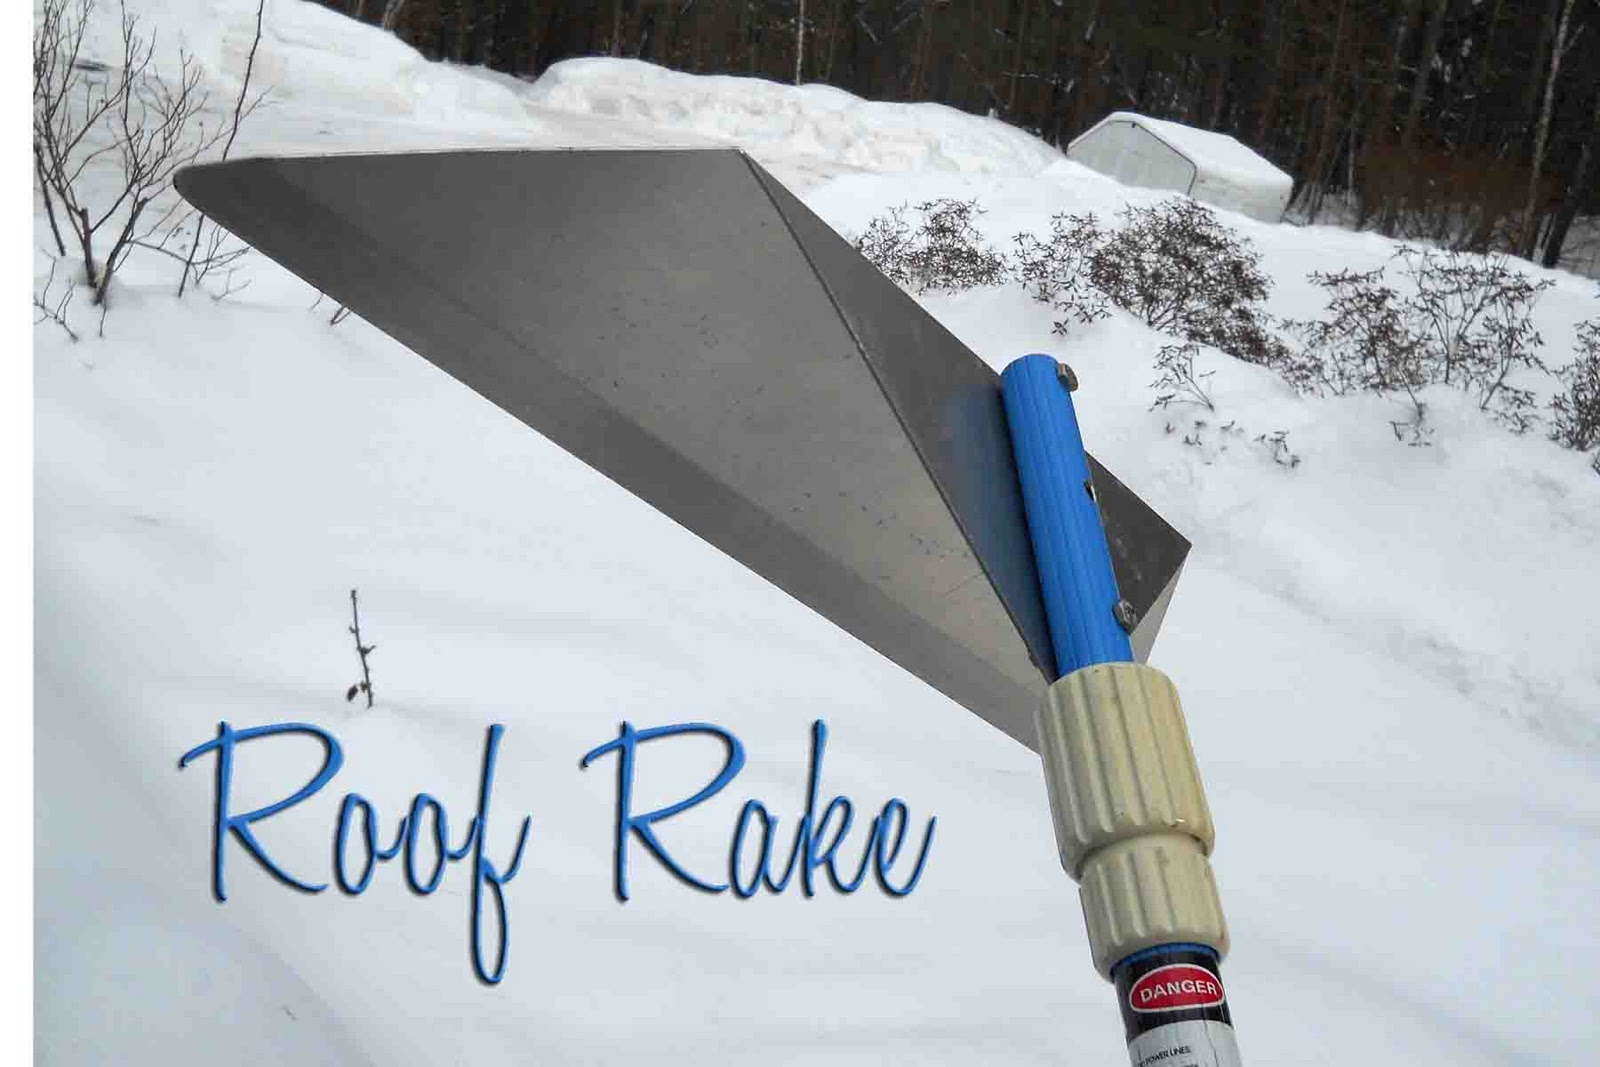 Welcome The Roof Rake. The Roof Rake Is A Tool That Looks Like An Upside